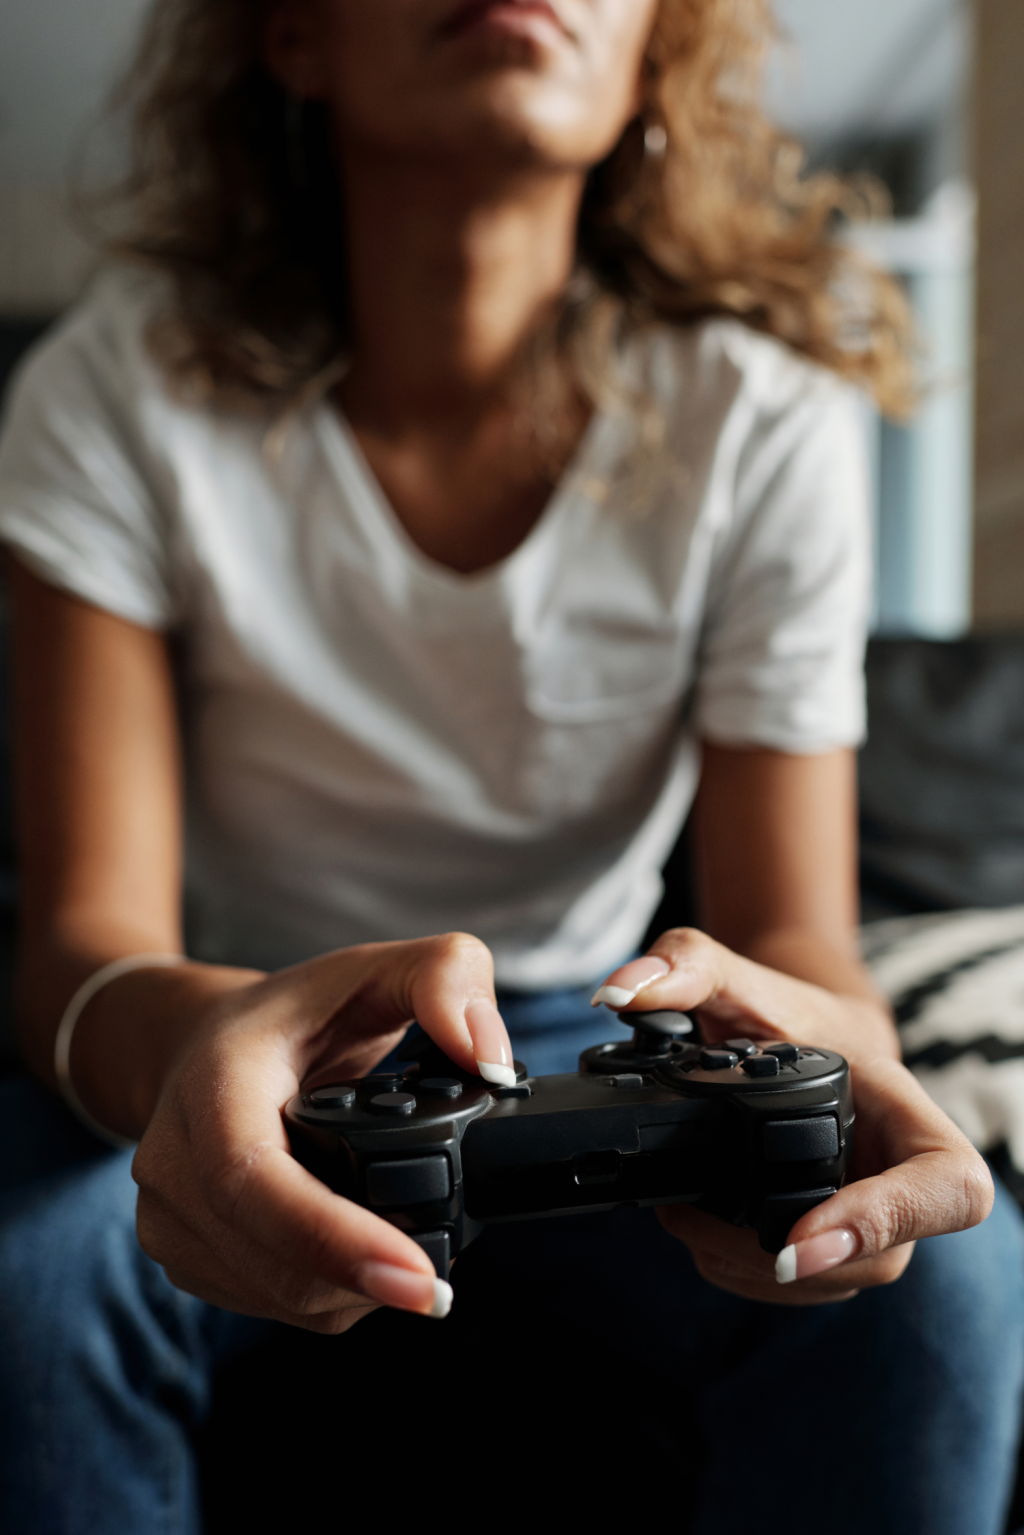 Person holding a playstation controller playing a video game